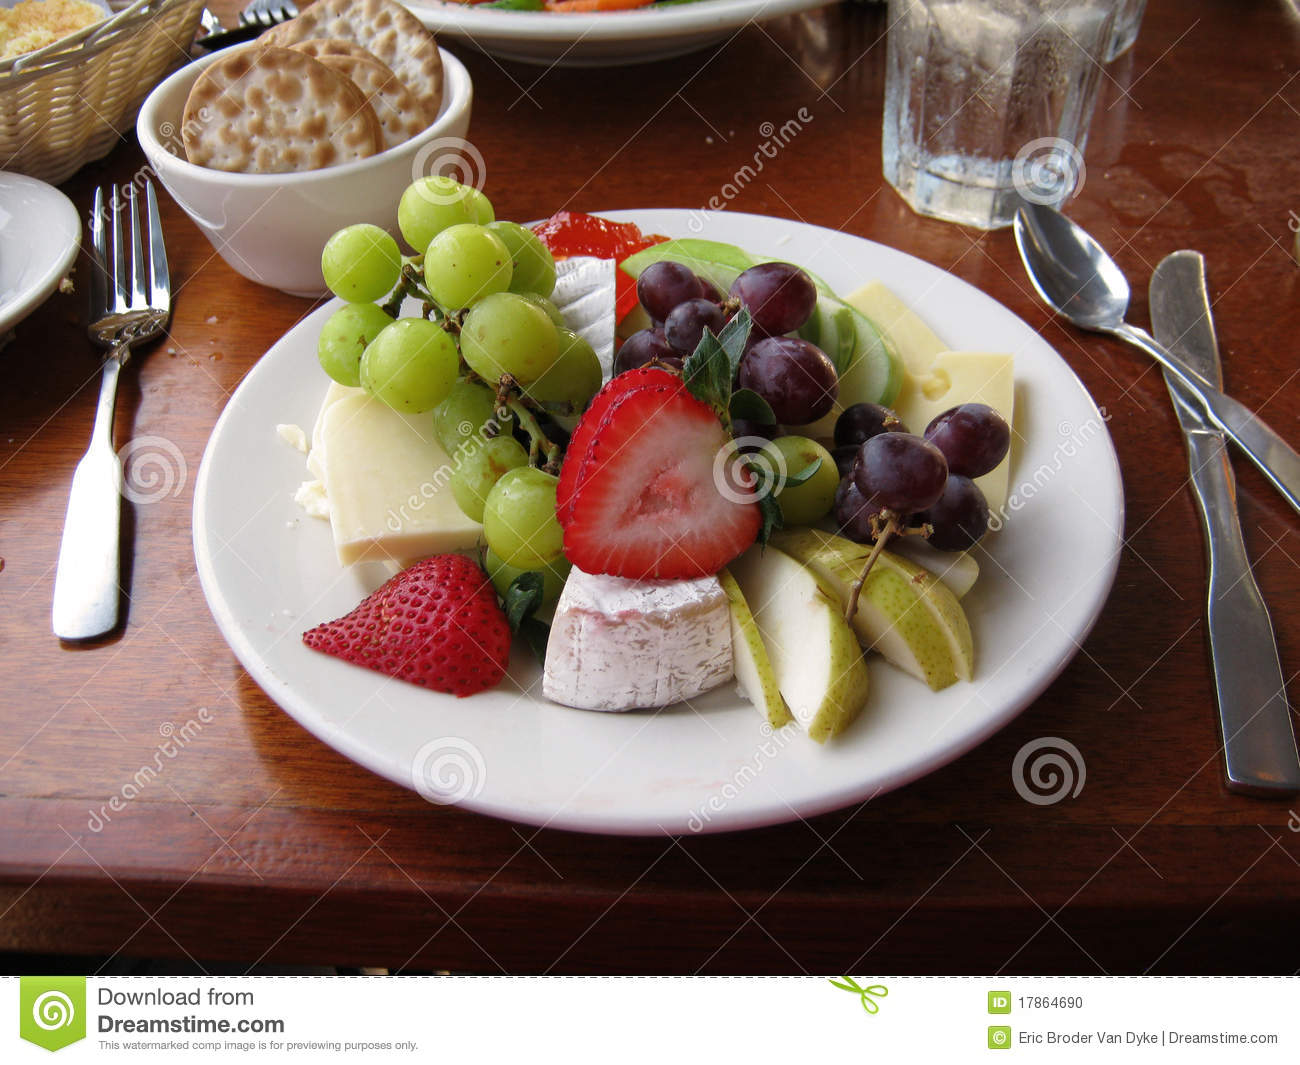 Fruit And Cheese Plate On Table Stock Photo - Image: 17864690